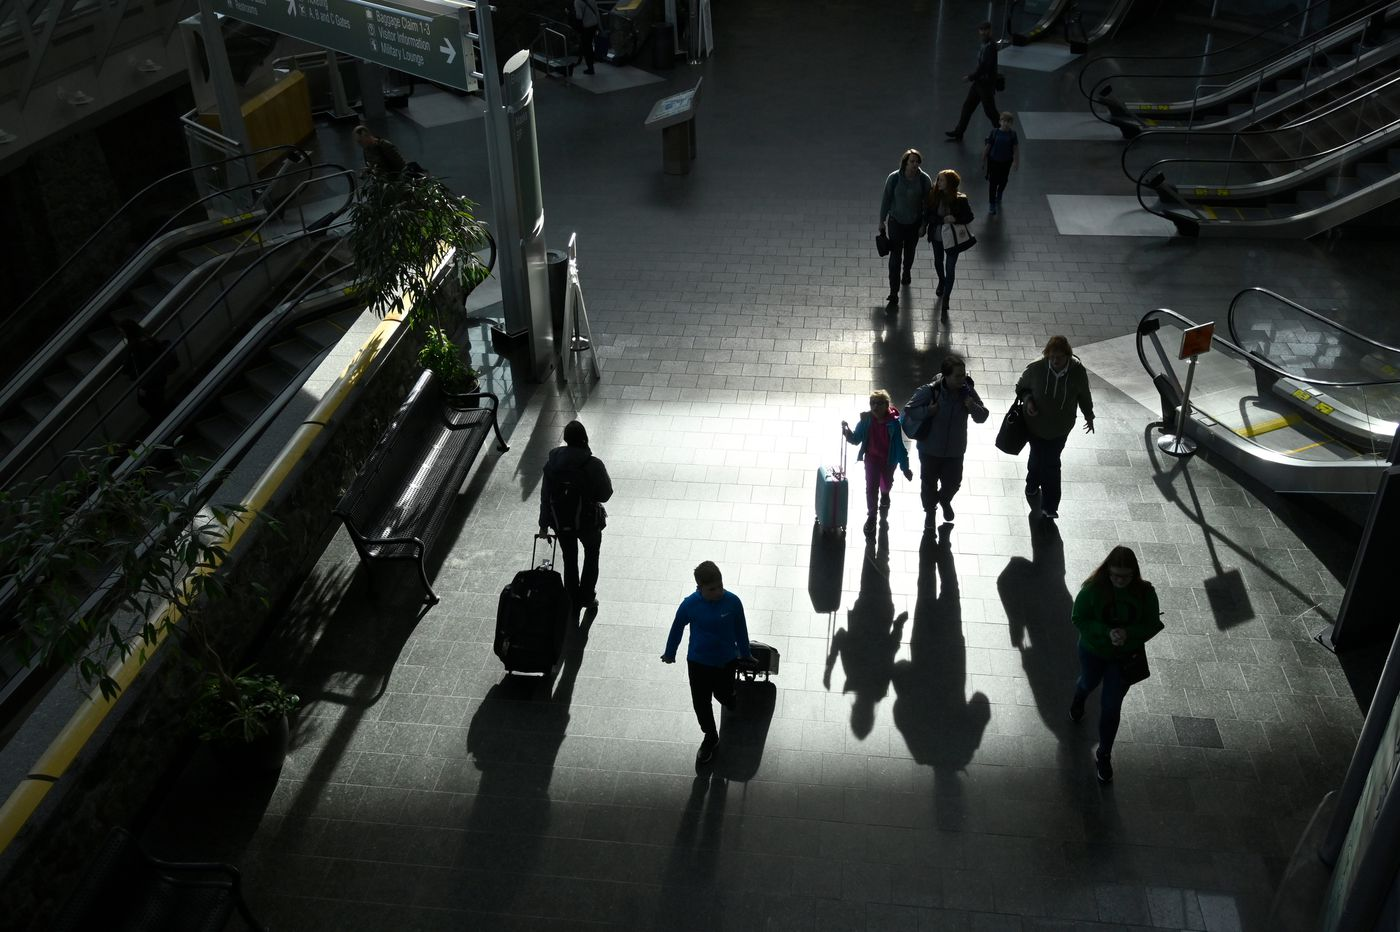 Travelers walk through Ted Stevens Anchorage International Airport on March 13, 2020. Airlines have reported a dramatic decrease in the number of passengers in the wake of the coronavirus epidemic. (Marc Lester / ADN)